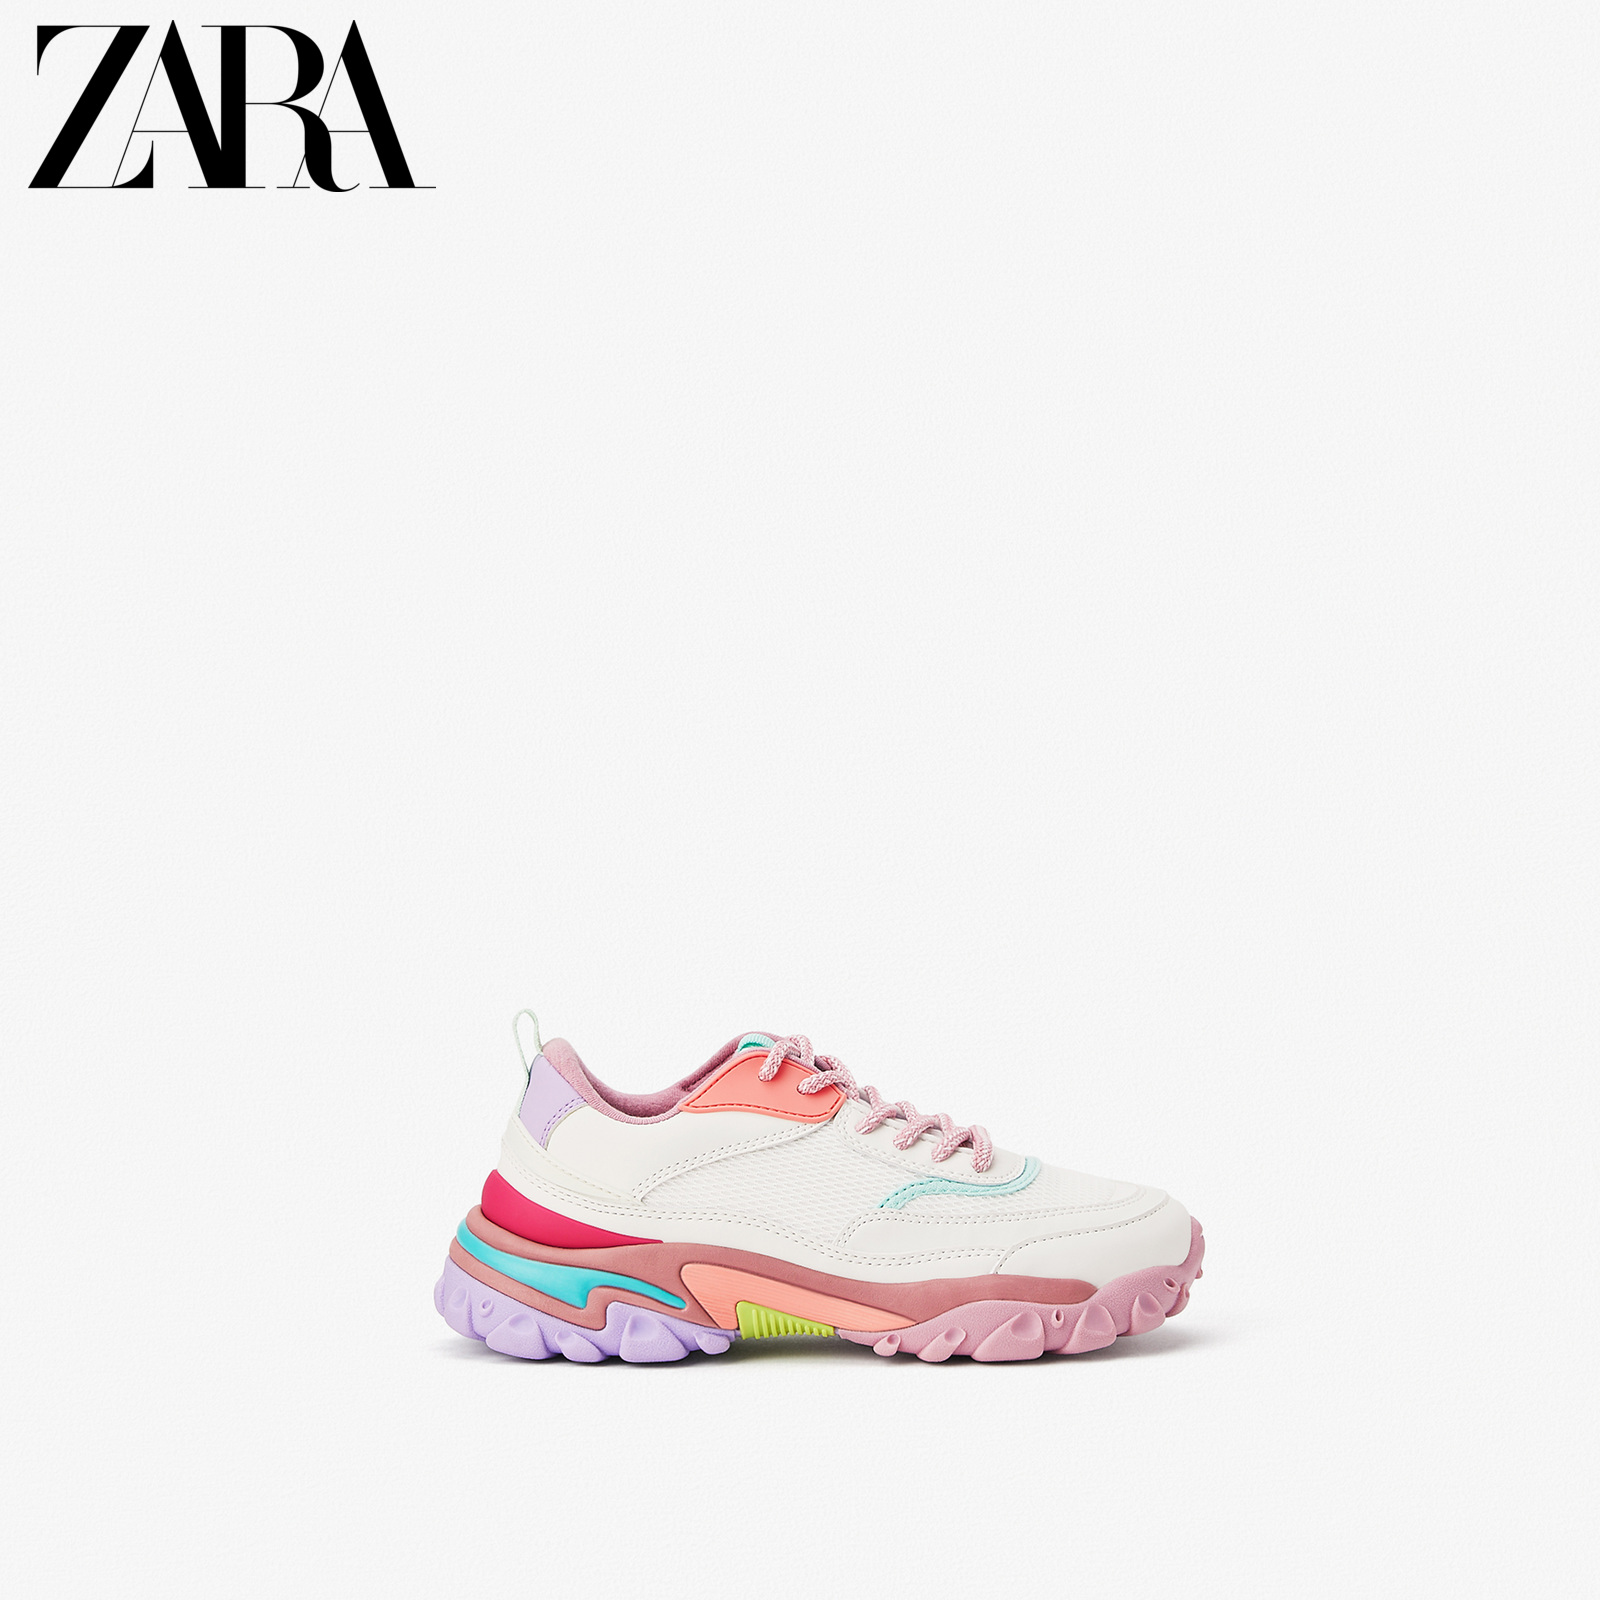 Zara new children's shoes girls' new spring and summer multicolor sole sneaker soft sole 12306530001